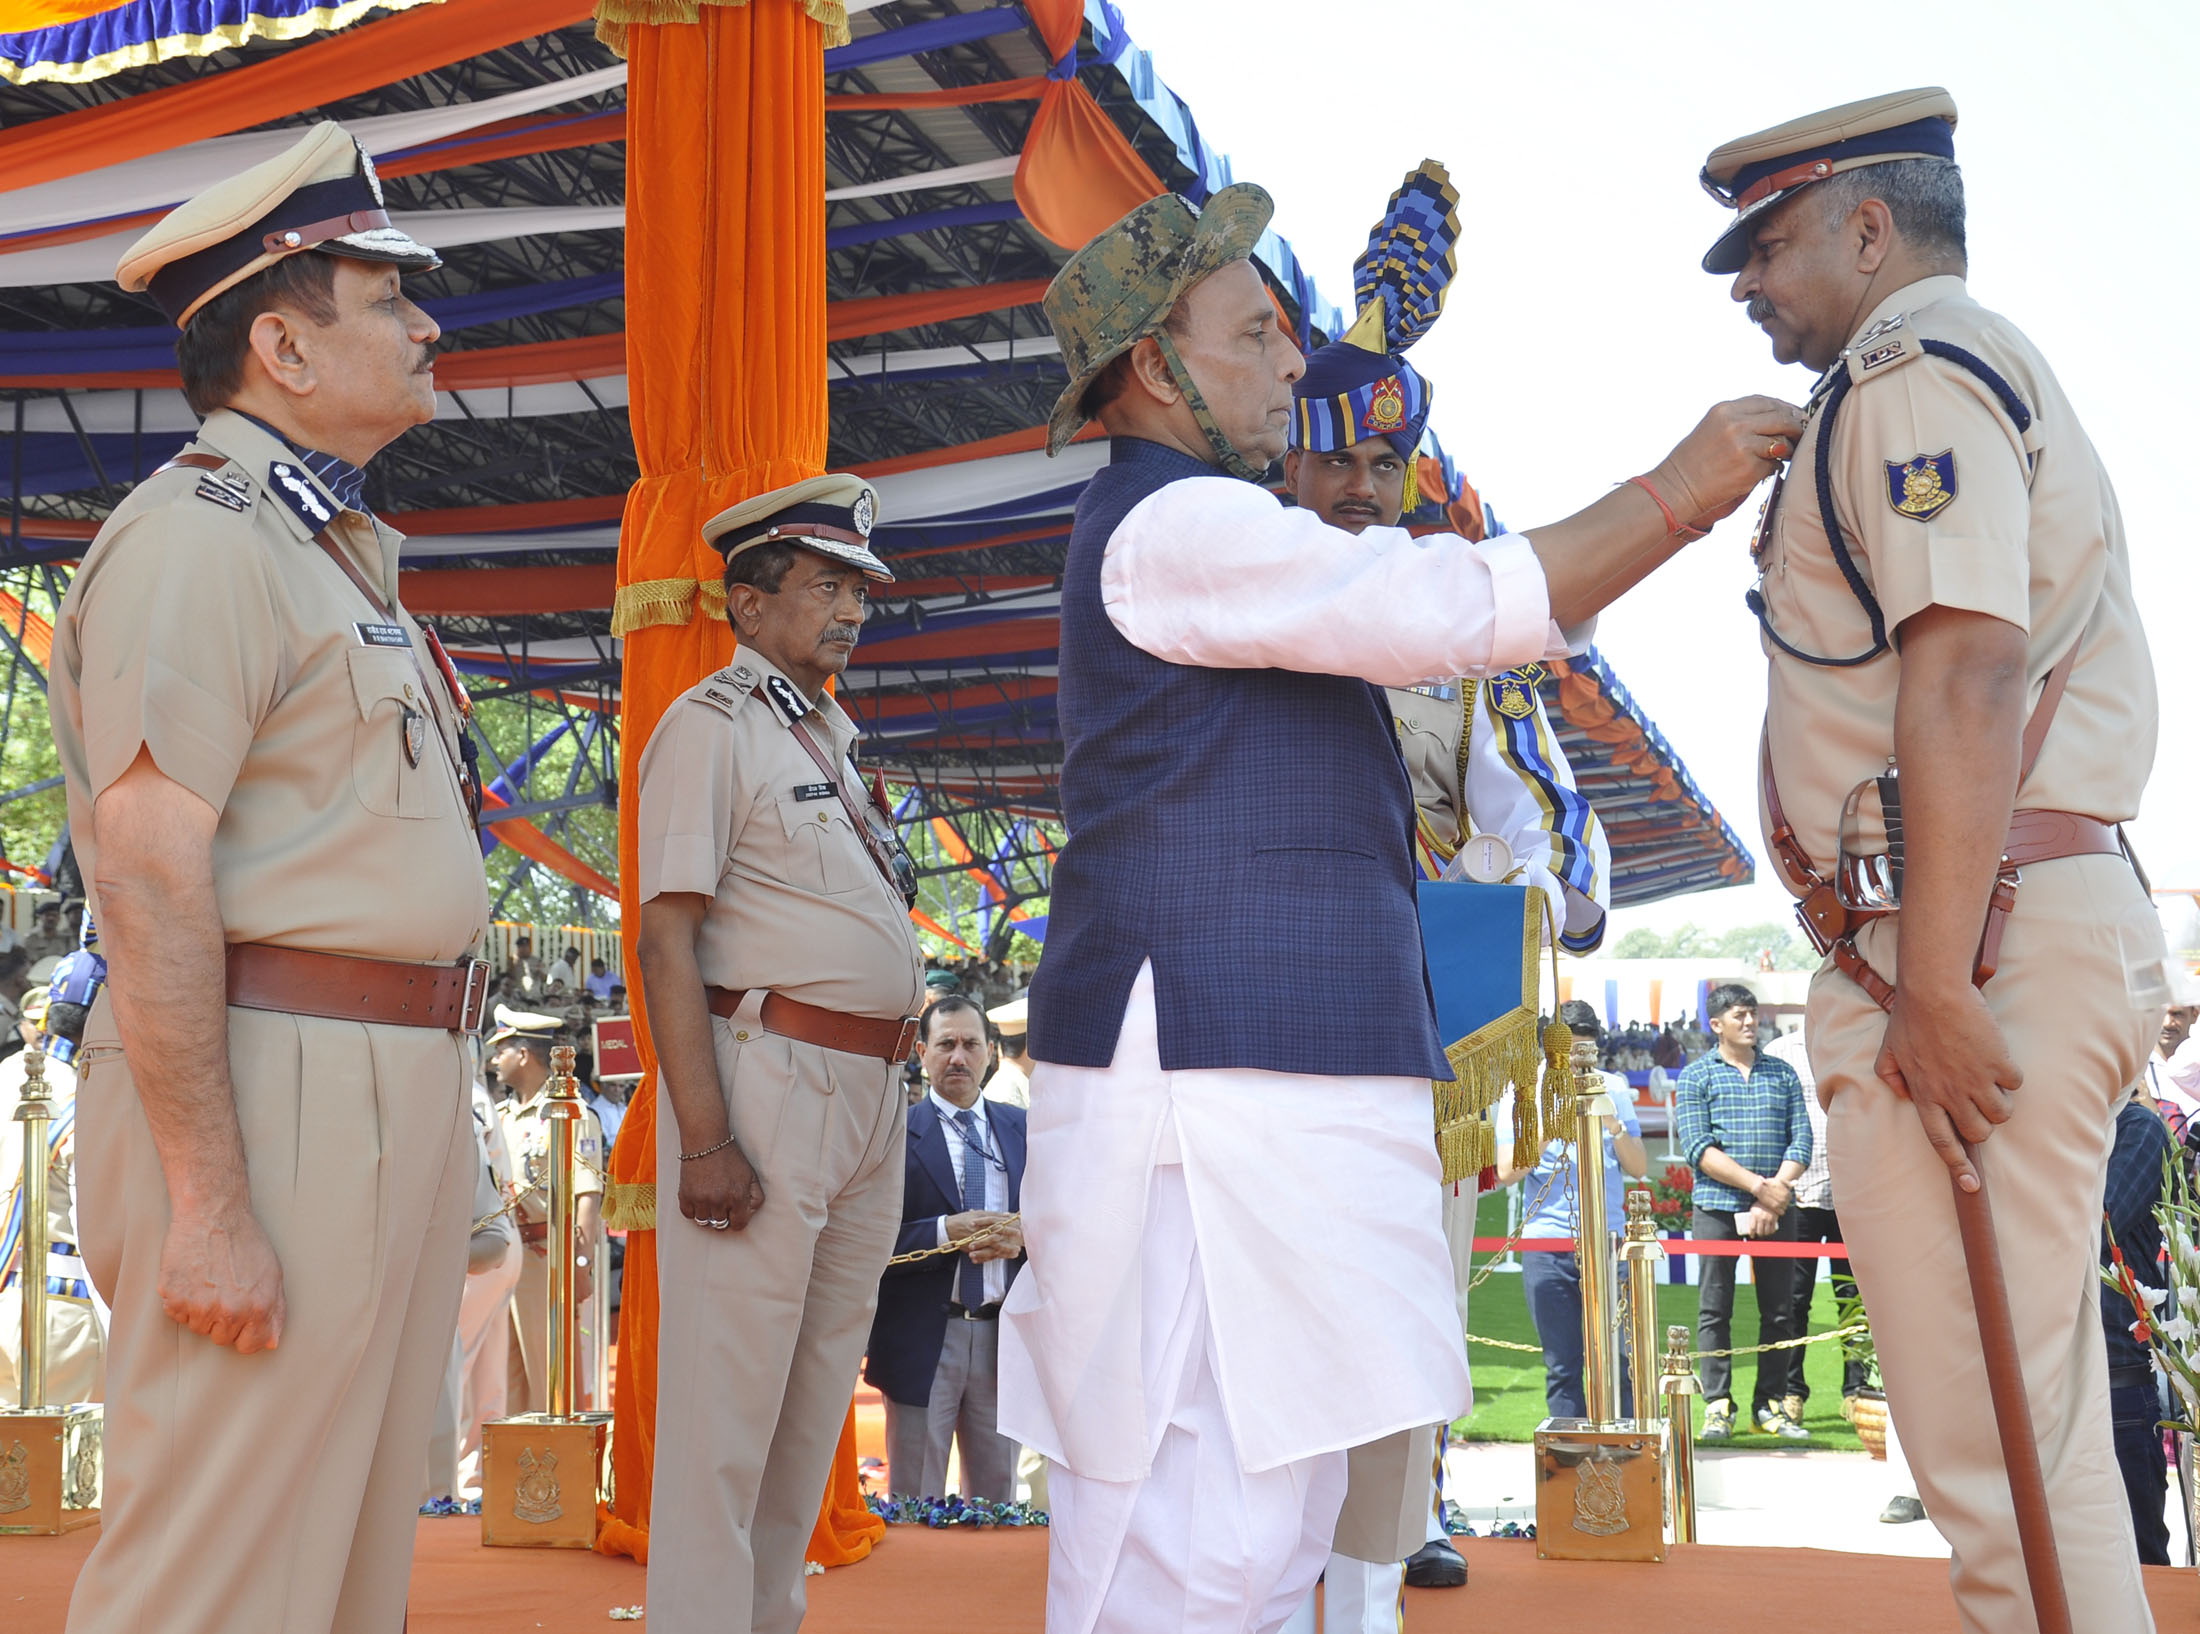 The Union Home Minister, Shri Rajnath Singh presenting President's Police Medals for Distinguished Service on the occasion of CRPF's 79th Raising Day Parade, in Gurugram, Haryana in March 24, 2018.